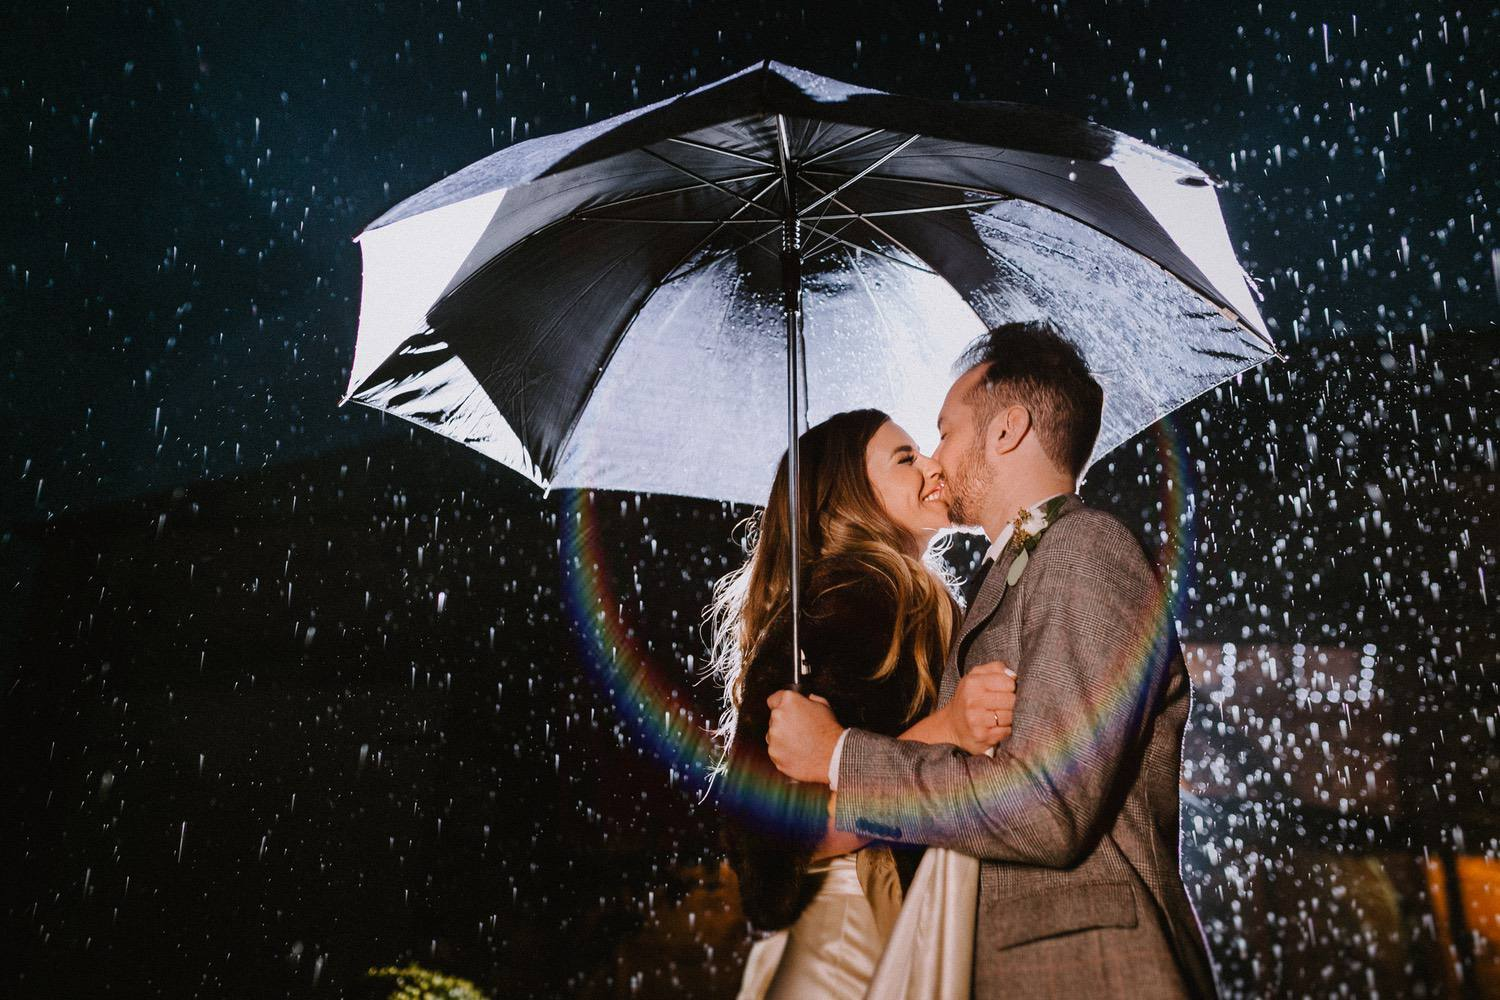 Even if it rains all day we can stand in the doorway and have some fun. Emma + Chris - Healey Barn, Northumberland.